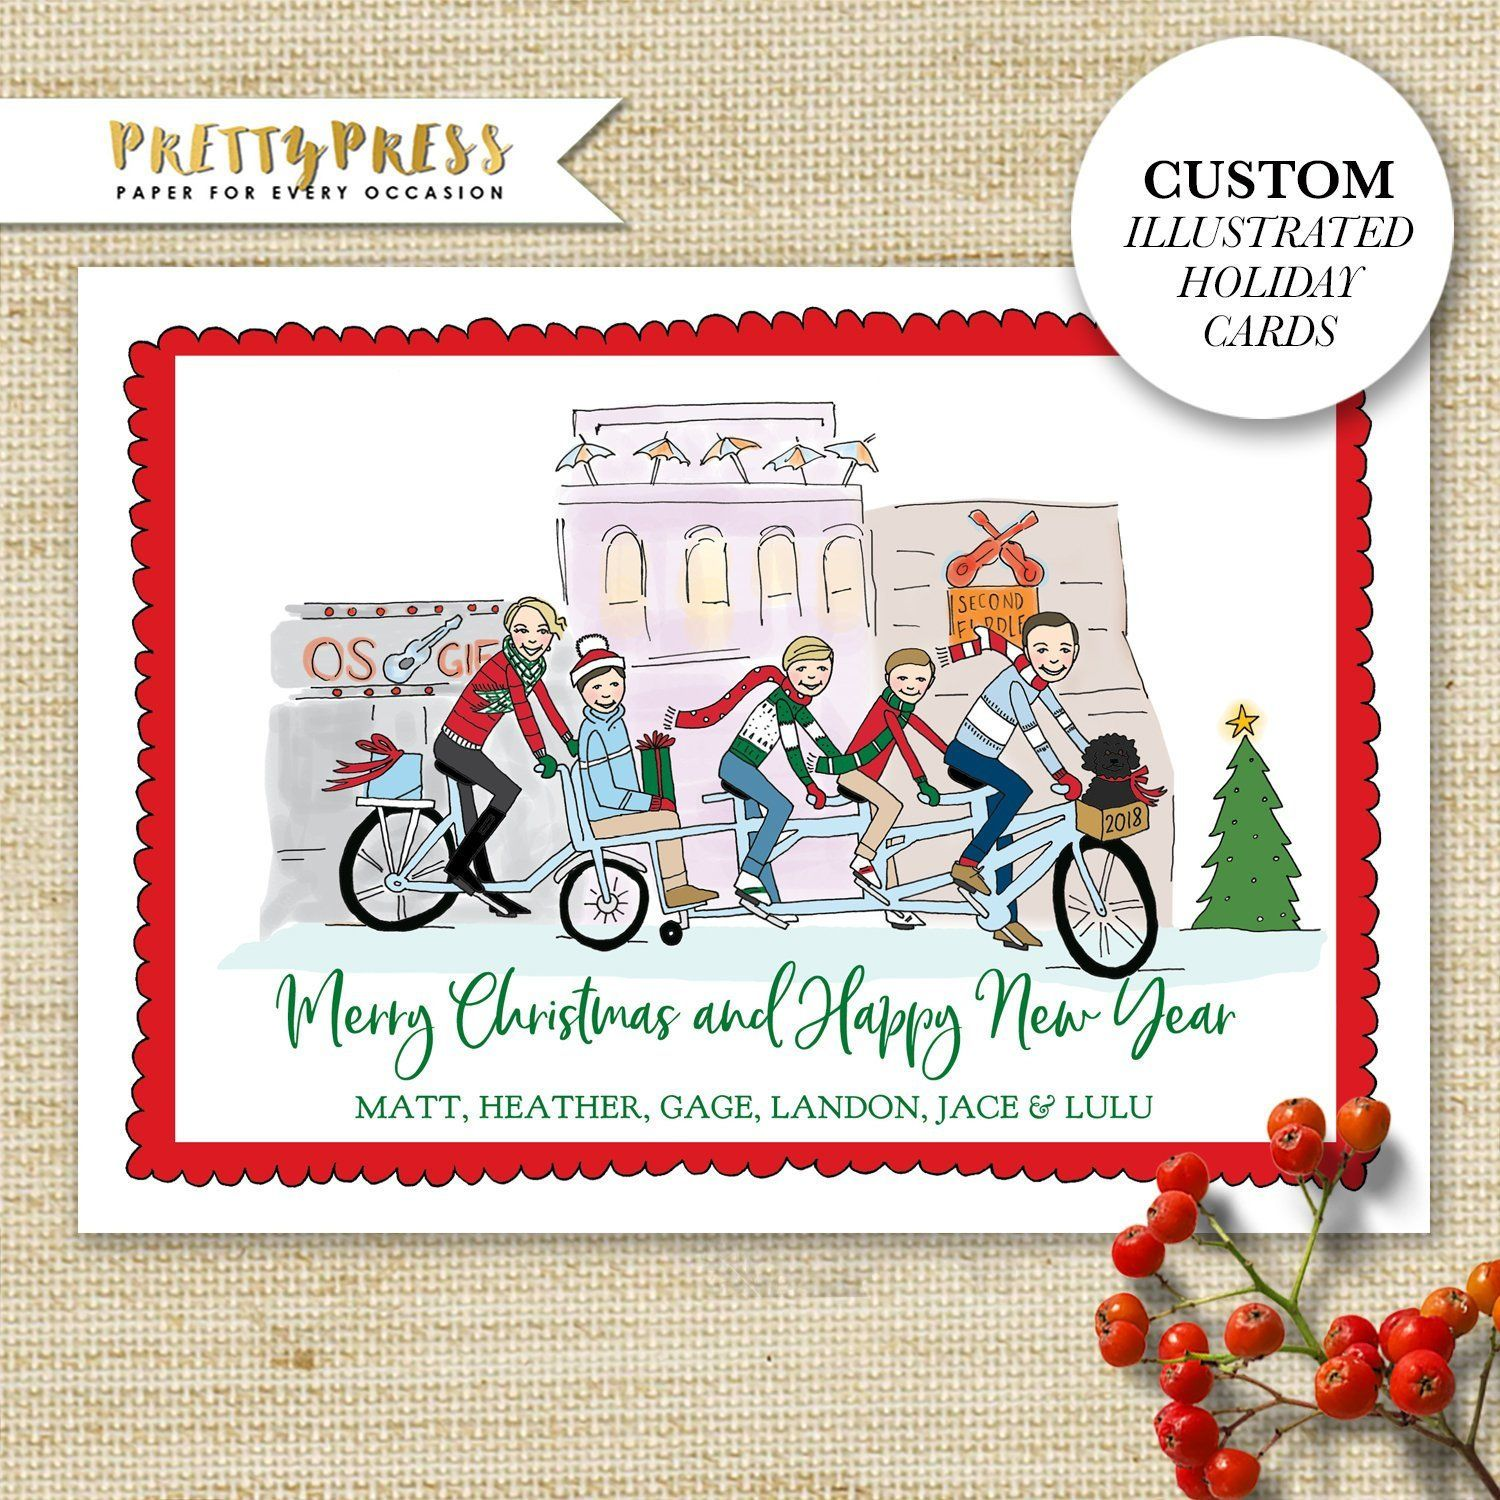 Personalized Christmas Cards -2020 Custom Illustrated Holiday Cards, Family Portrait Christmas Cards